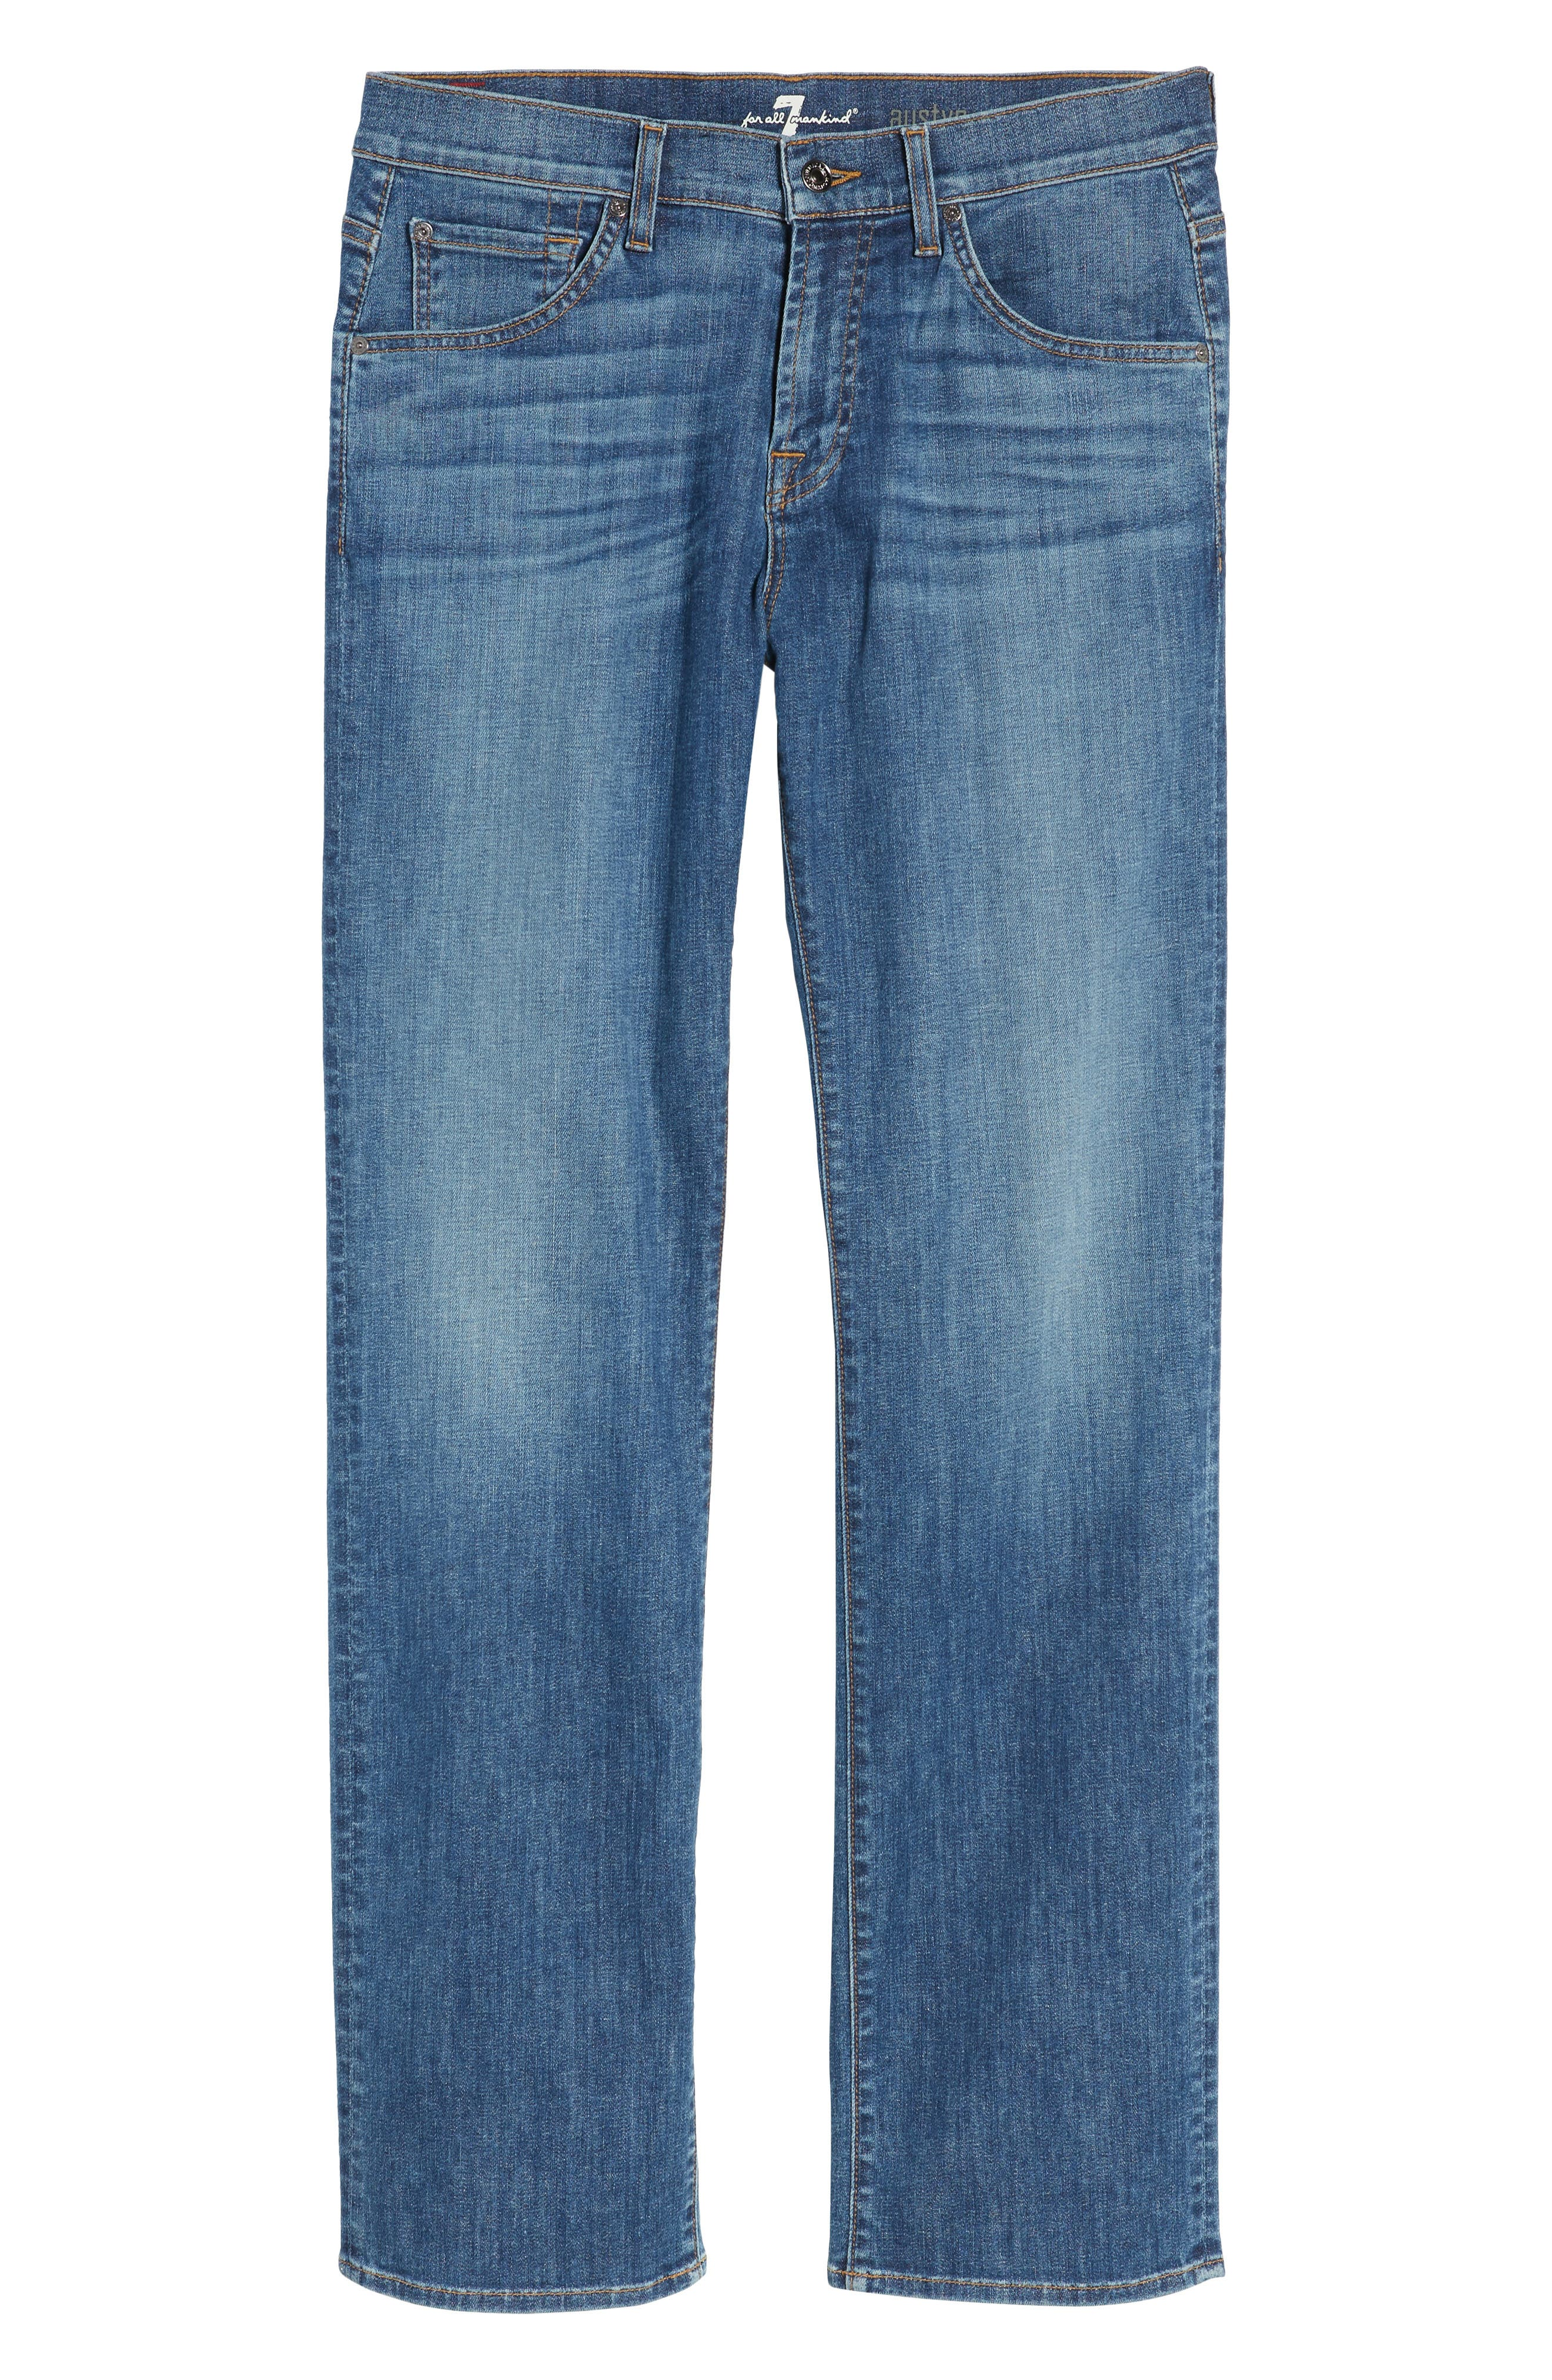 Austyn Relaxed Fit Jeans,                             Alternate thumbnail 6, color,                             East Sussex